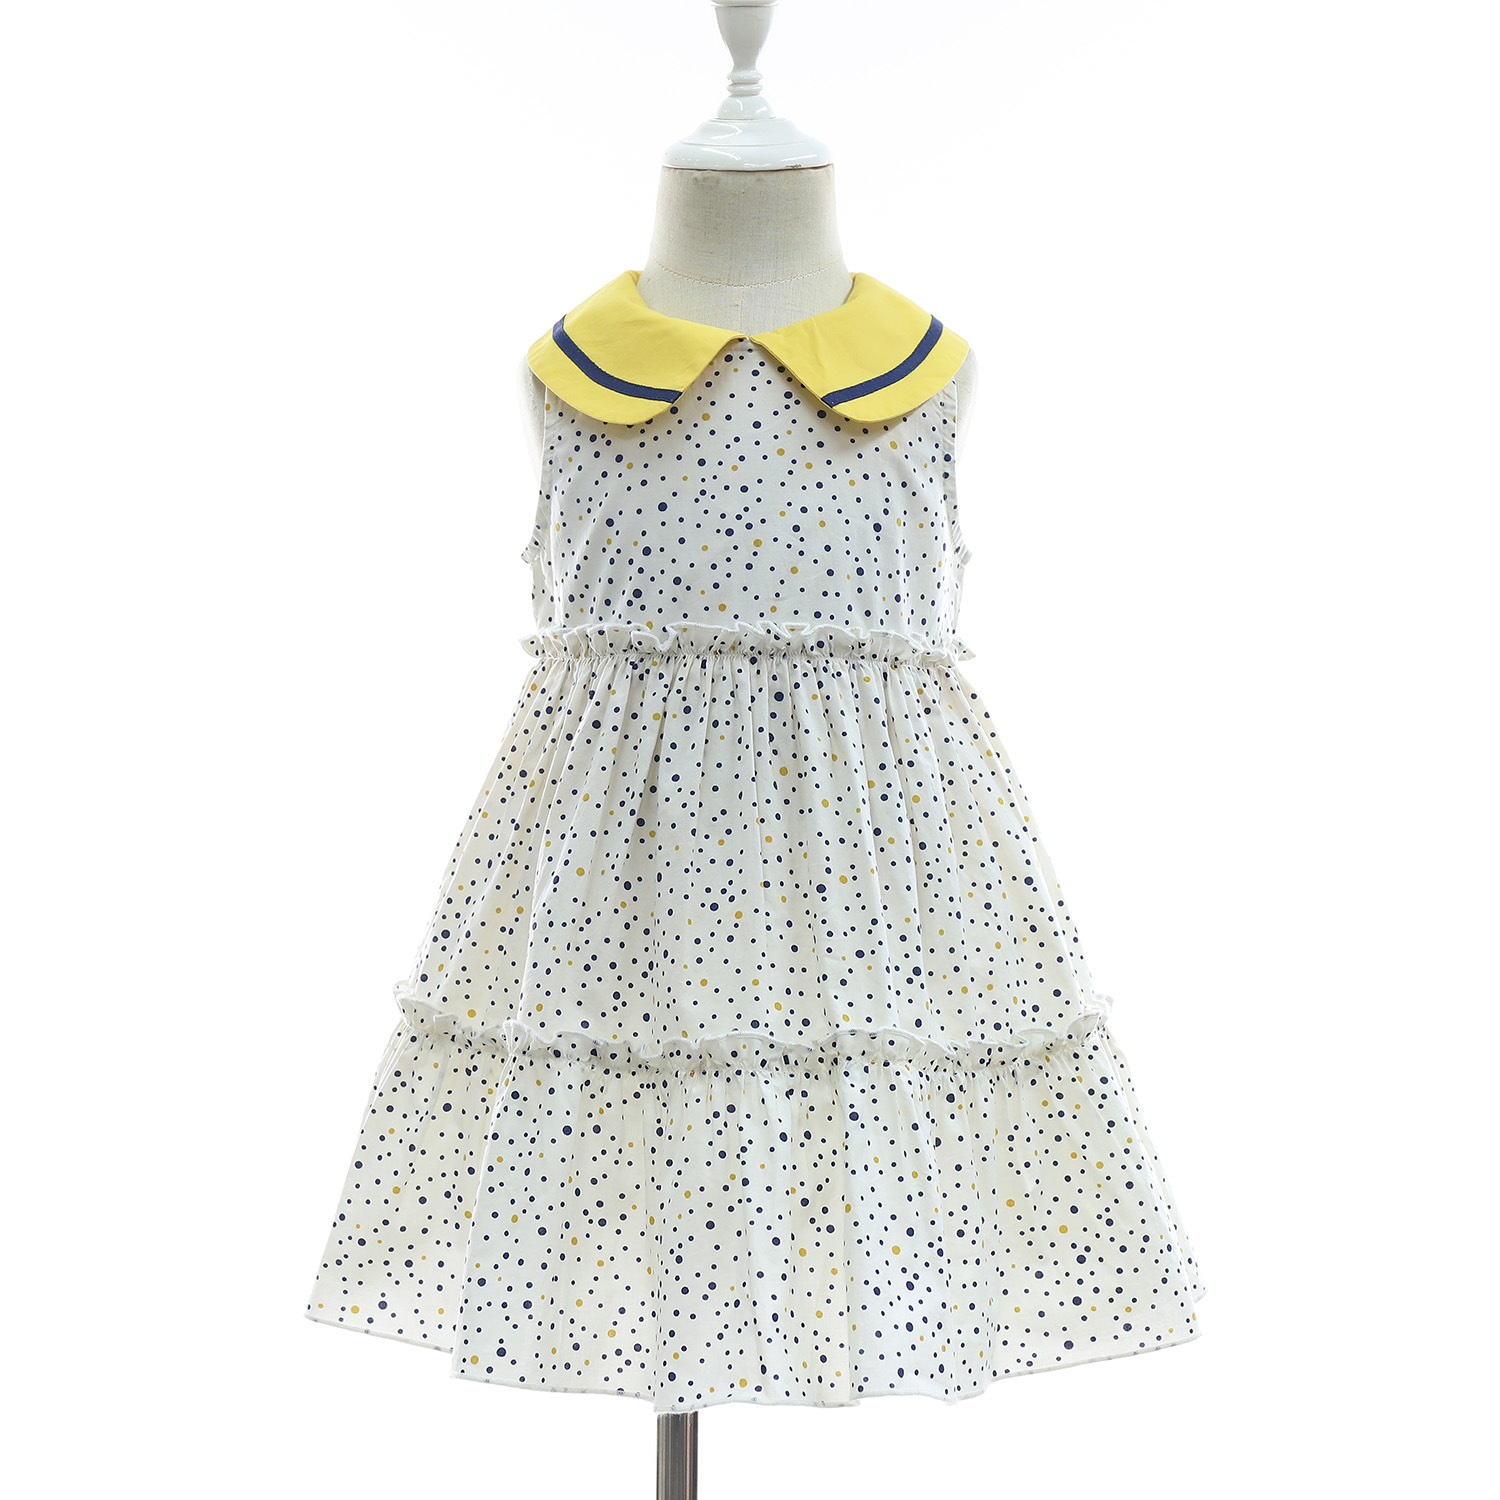 4ec418c7088 China Cotton Dress, Cotton Dress Manufacturers, Suppliers, Price | Made-in- China.com